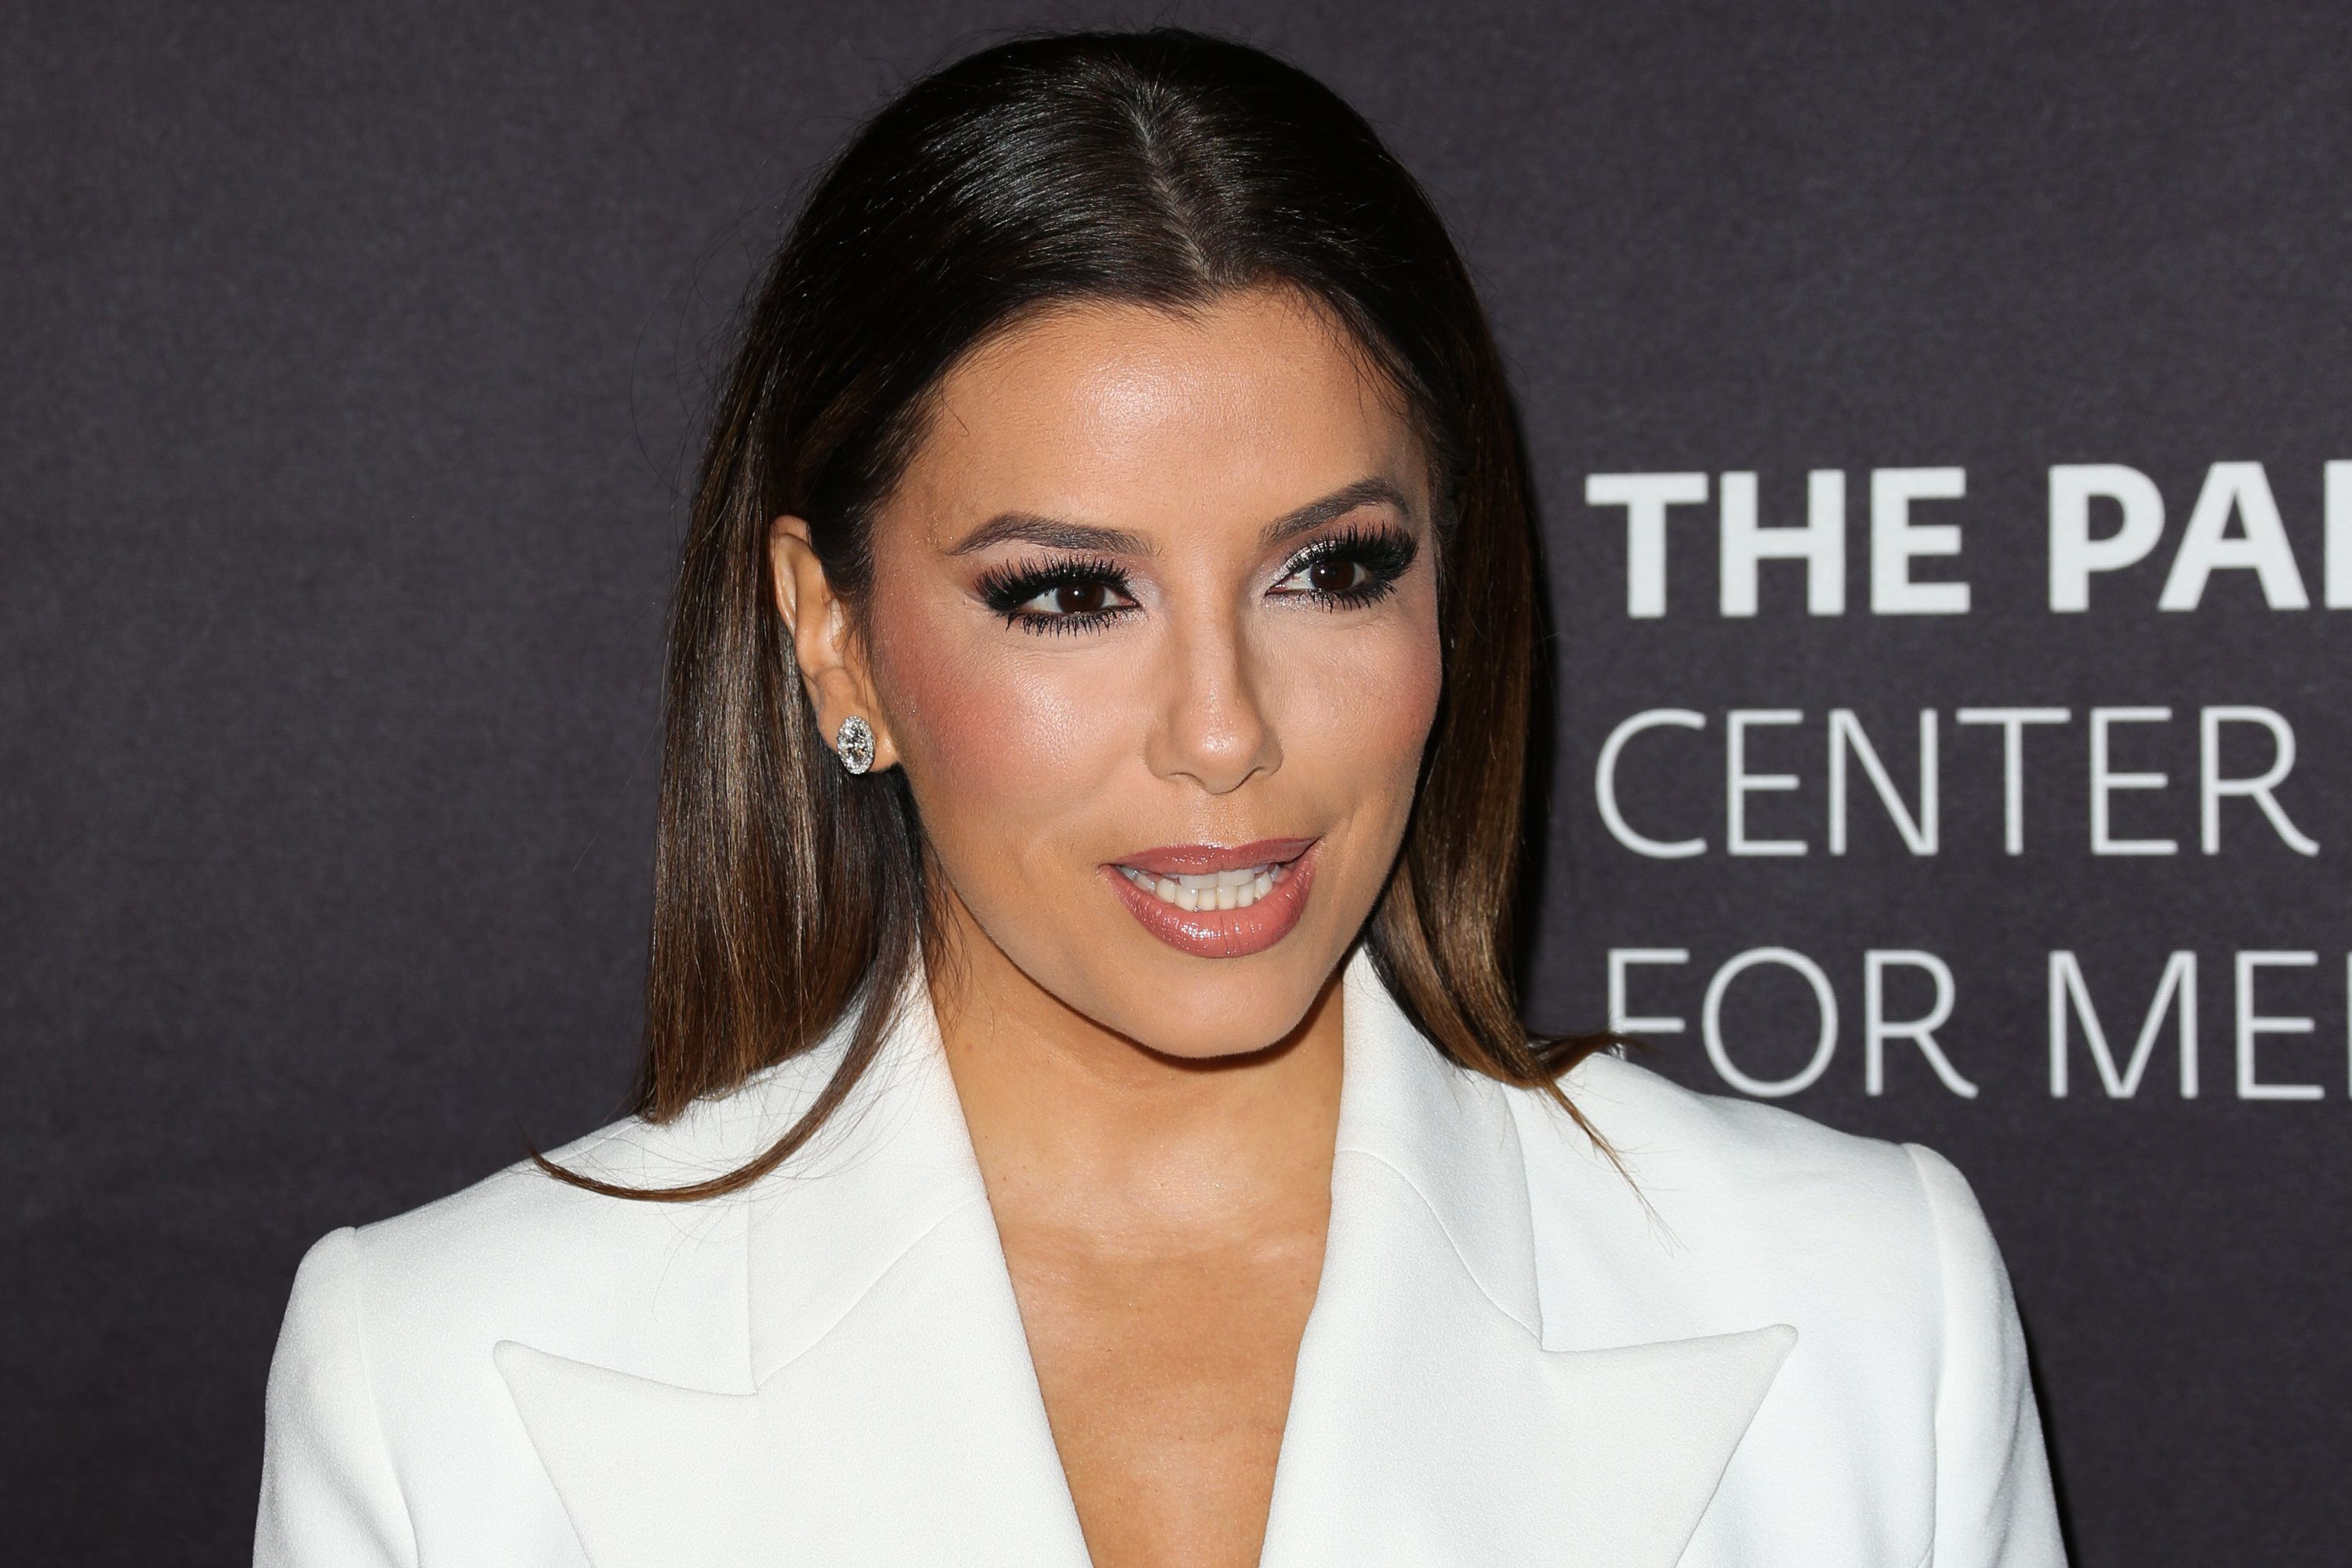 BEVERLY HILLS, CA - OCTOBER 24:  Actress / Producer Eva Longoria attends The Paley Center for Media's Hollywood tribute to Hispanic achievements in television at the Beverly Wilshire Four Seasons Hotel on October 24, 2016 in Beverly Hills, California.  (Photo by Paul Archuleta/FilmMagic)